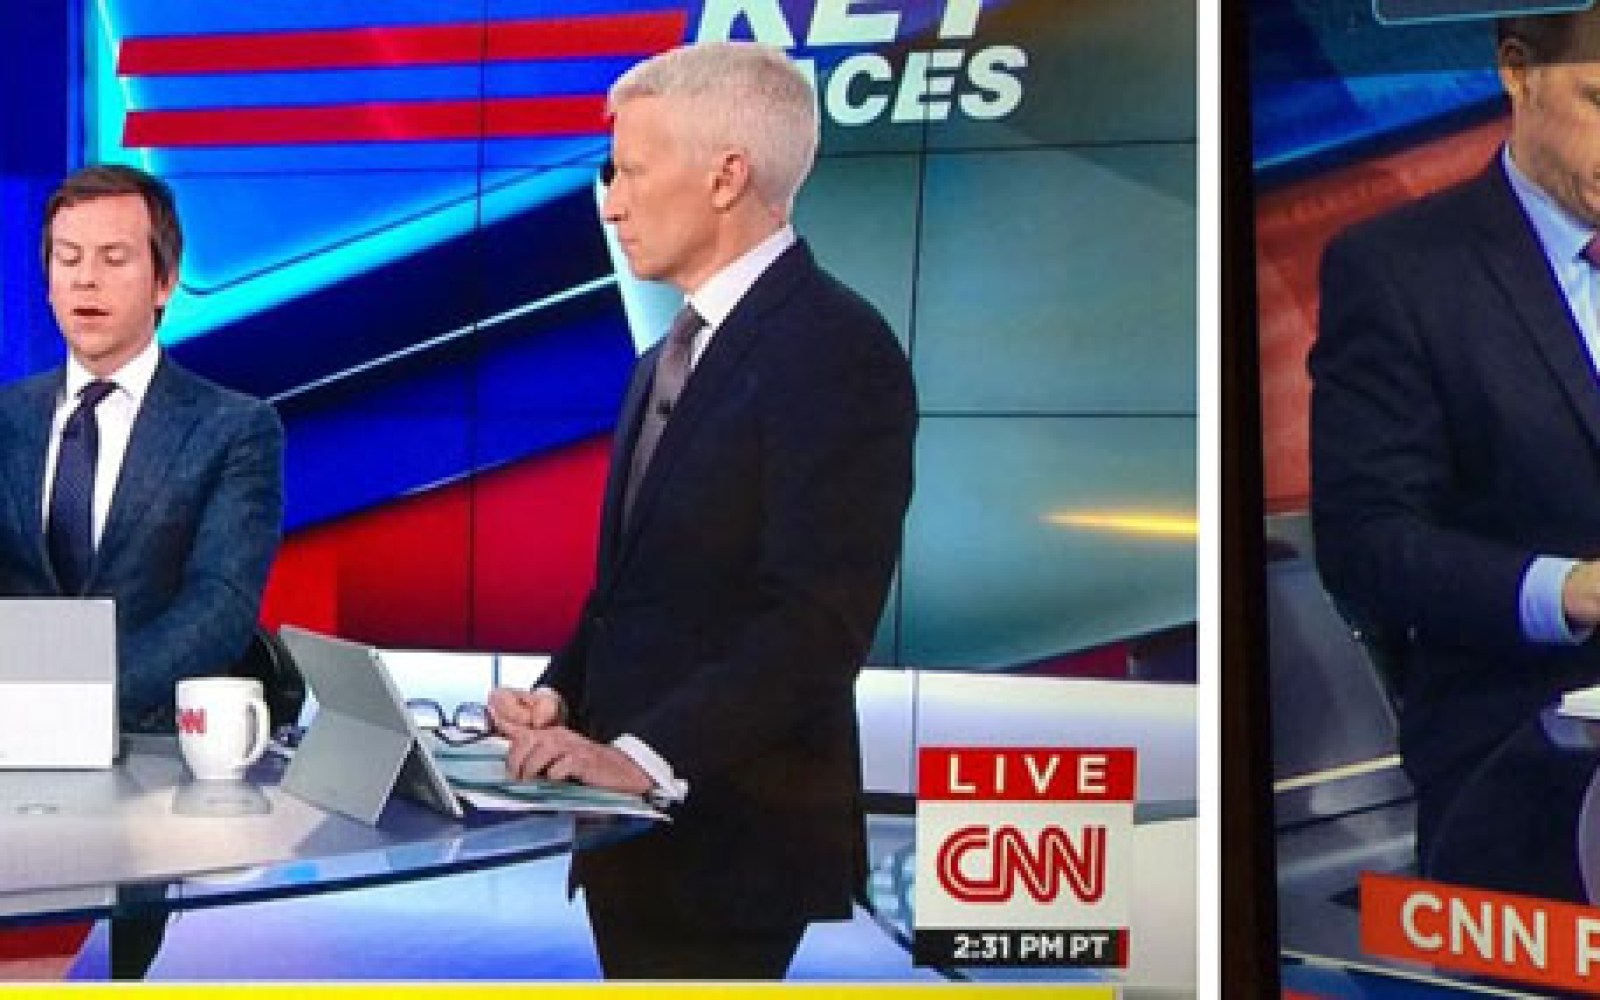 Microsoft Surface product placement in CNN election coverage fails as iPads revealed behind them [Updated]